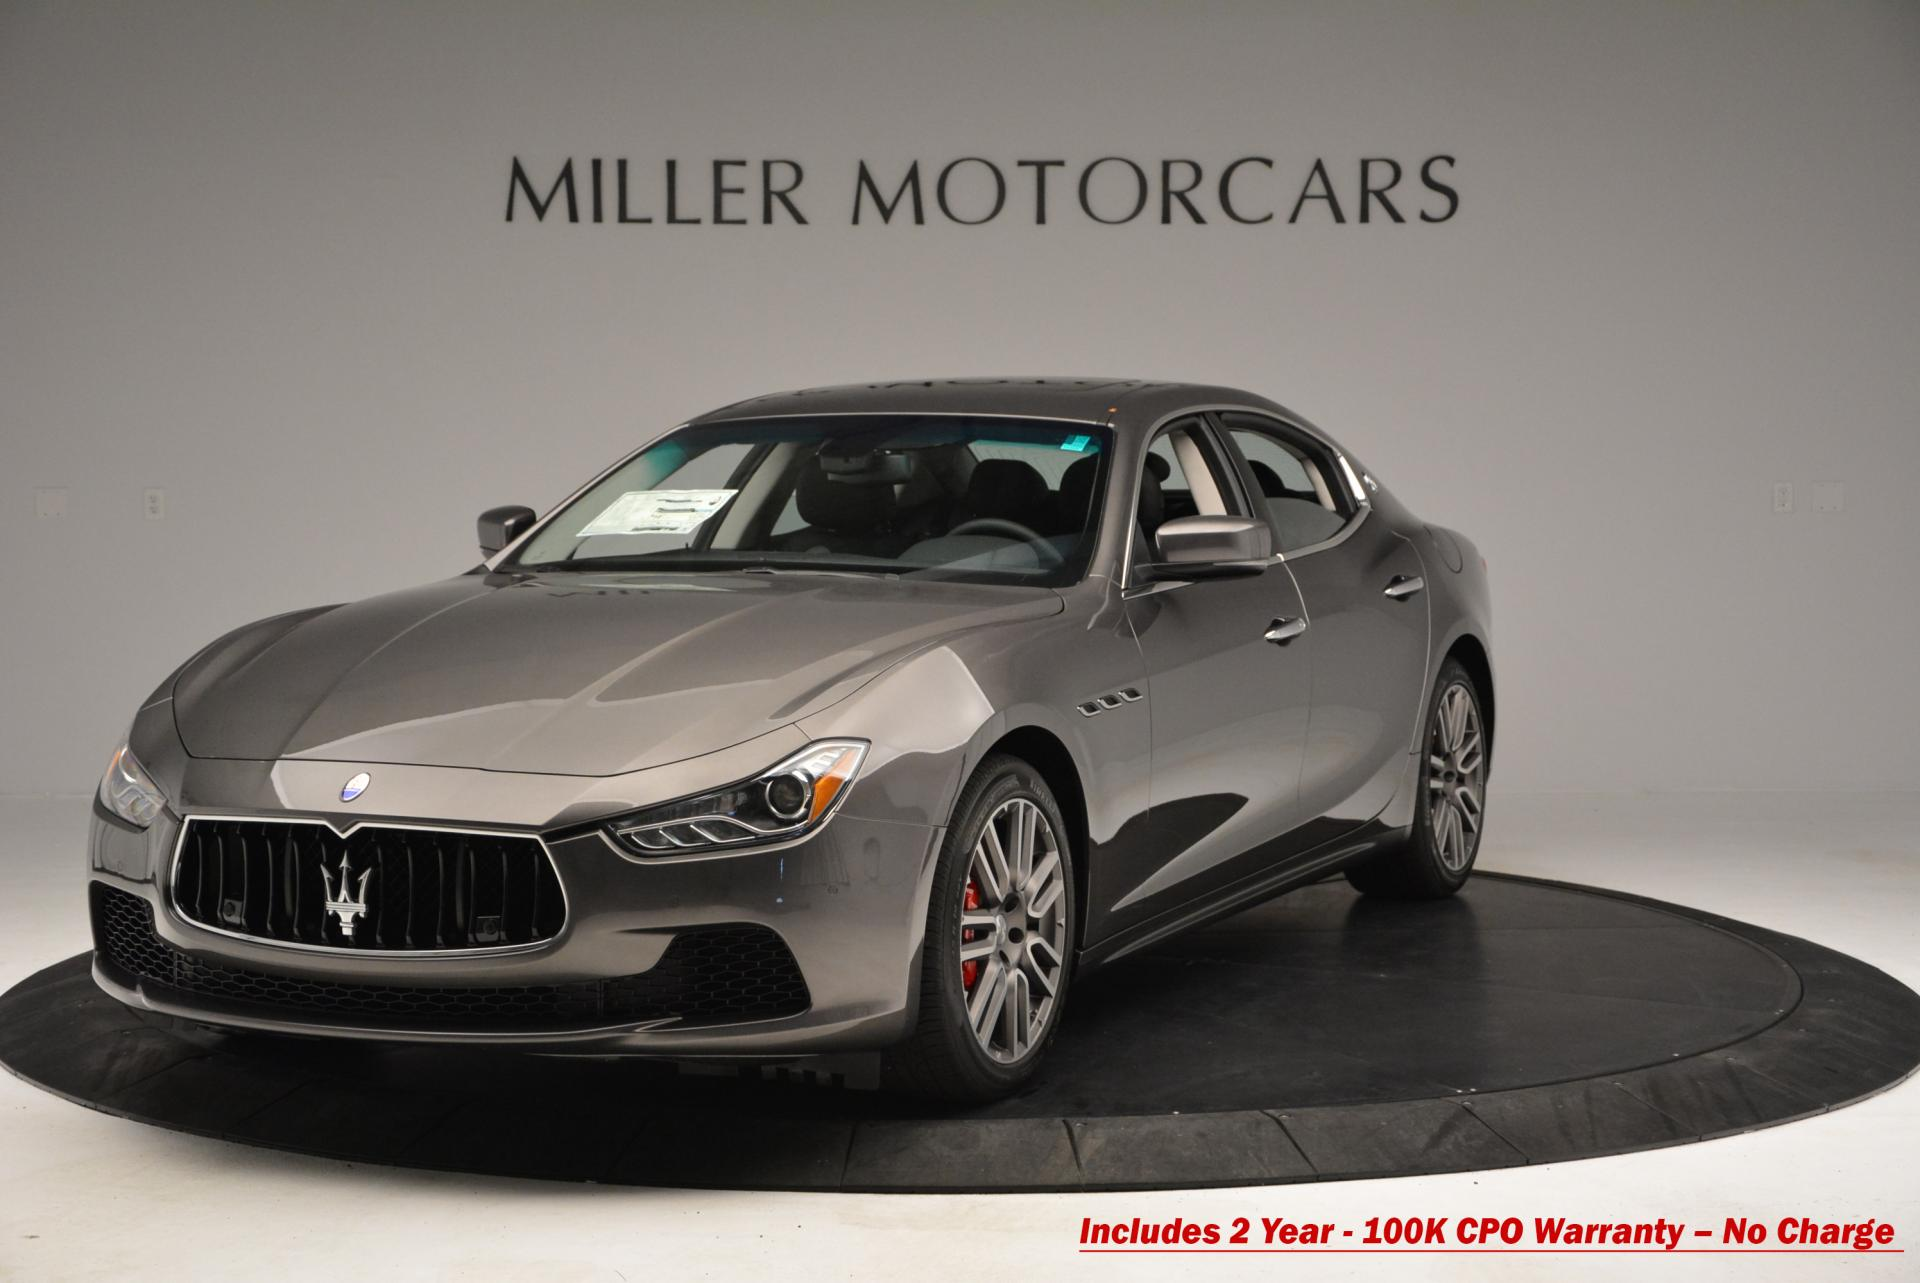 Used 2015 Maserati Ghibli S Q4 for sale Sold at Bugatti of Greenwich in Greenwich CT 06830 1